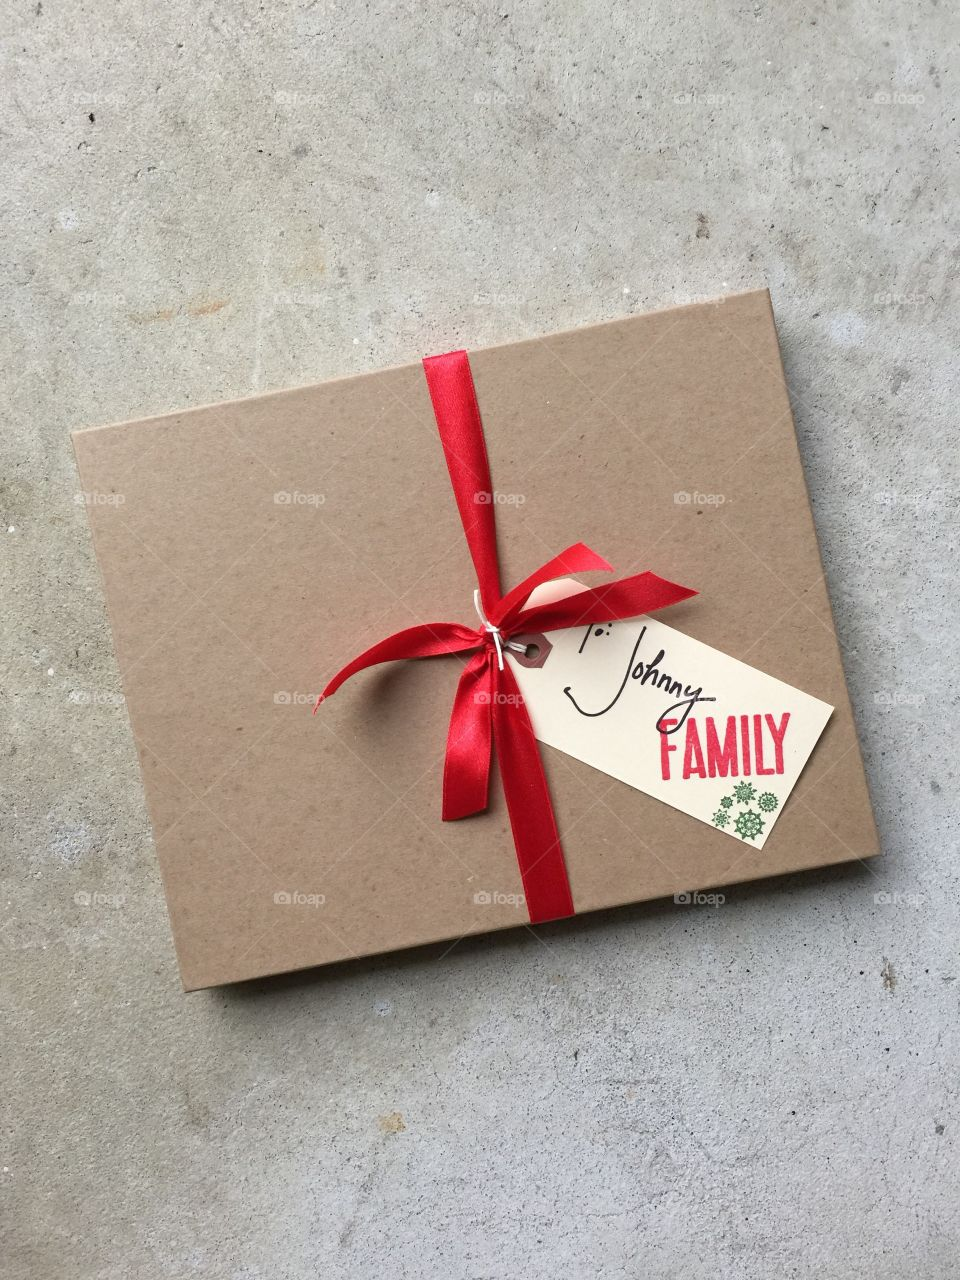 Brown rectangular craft cardboard gift box tied with single red festive ribbon and gift tag with handwriting family